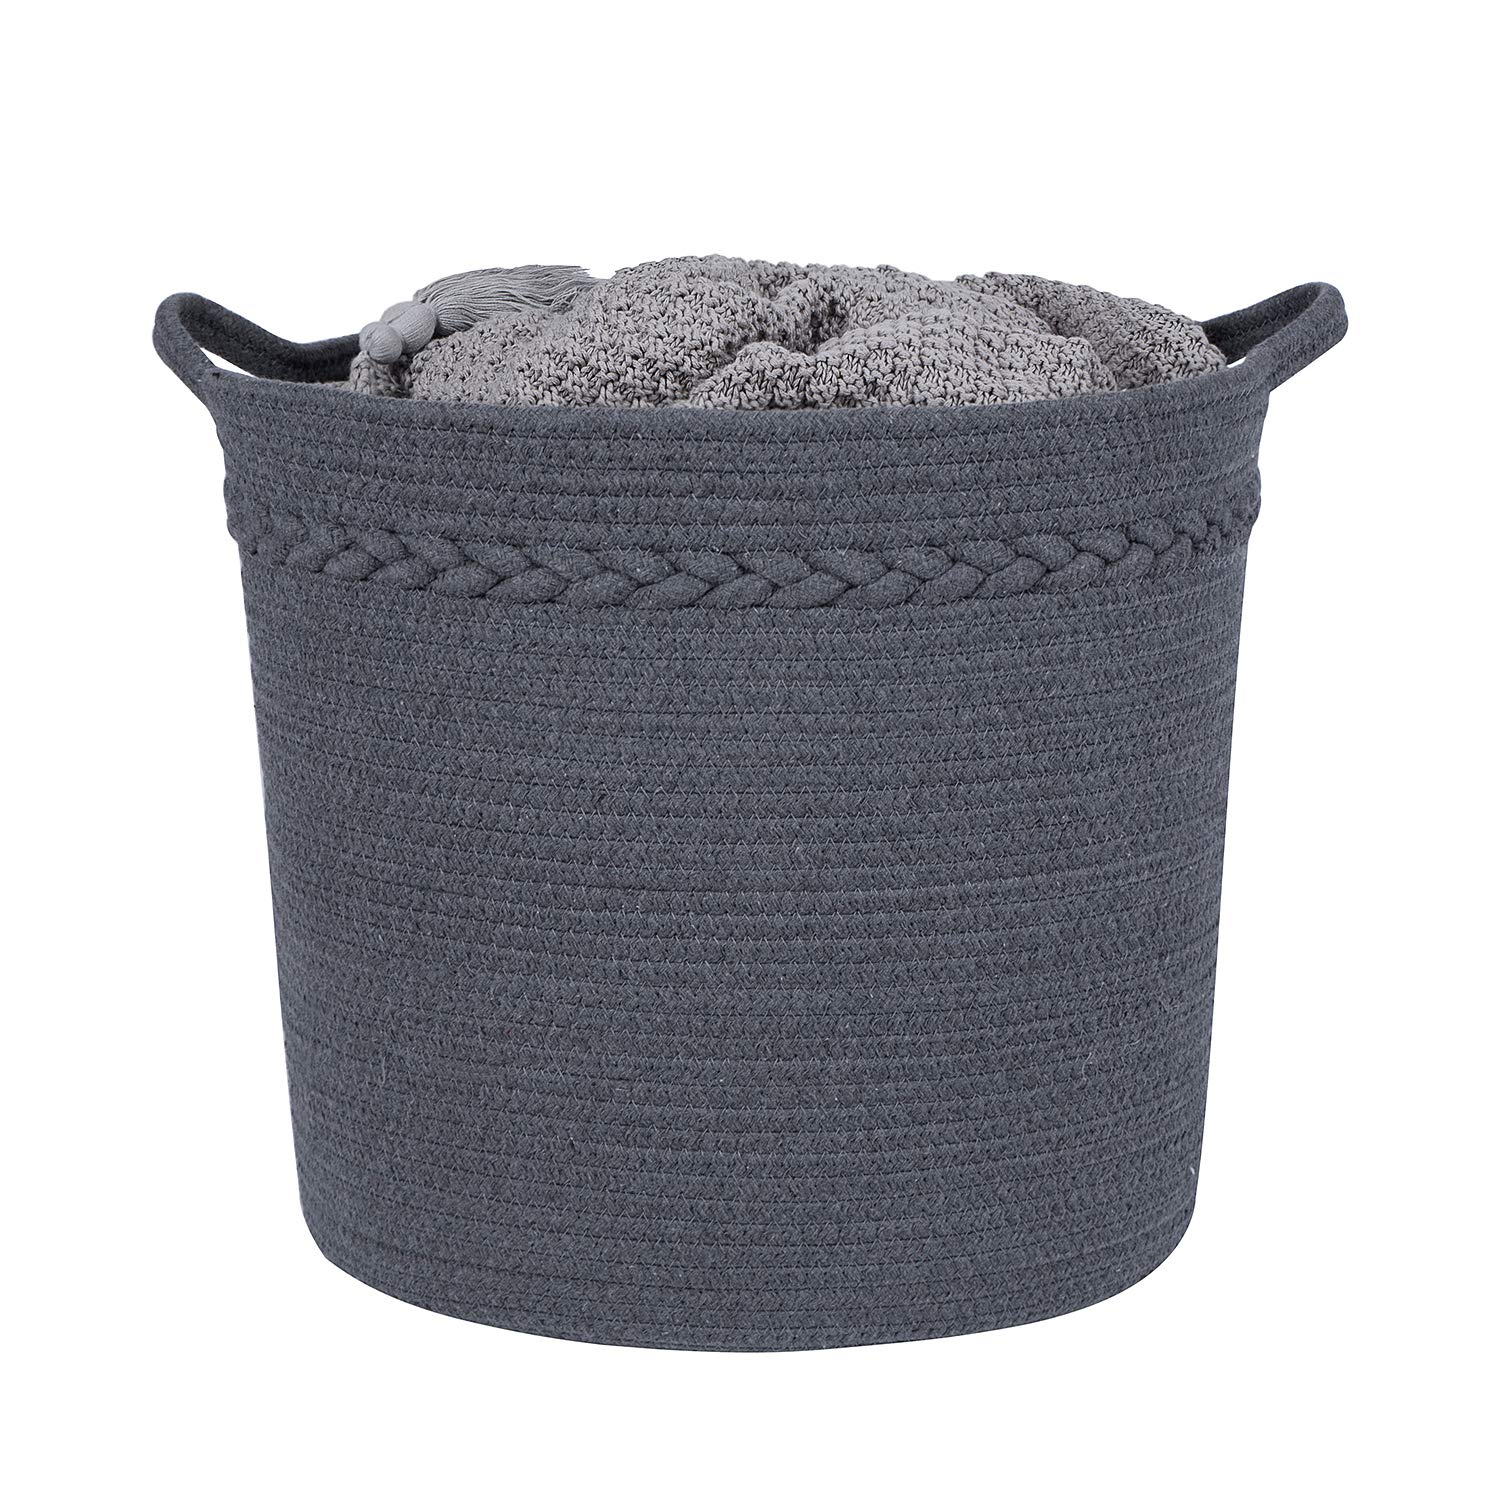 Amazon.com : Large Storage Woven Basket, Decorative Basket for Toys, Blankets, Laundry, Towel